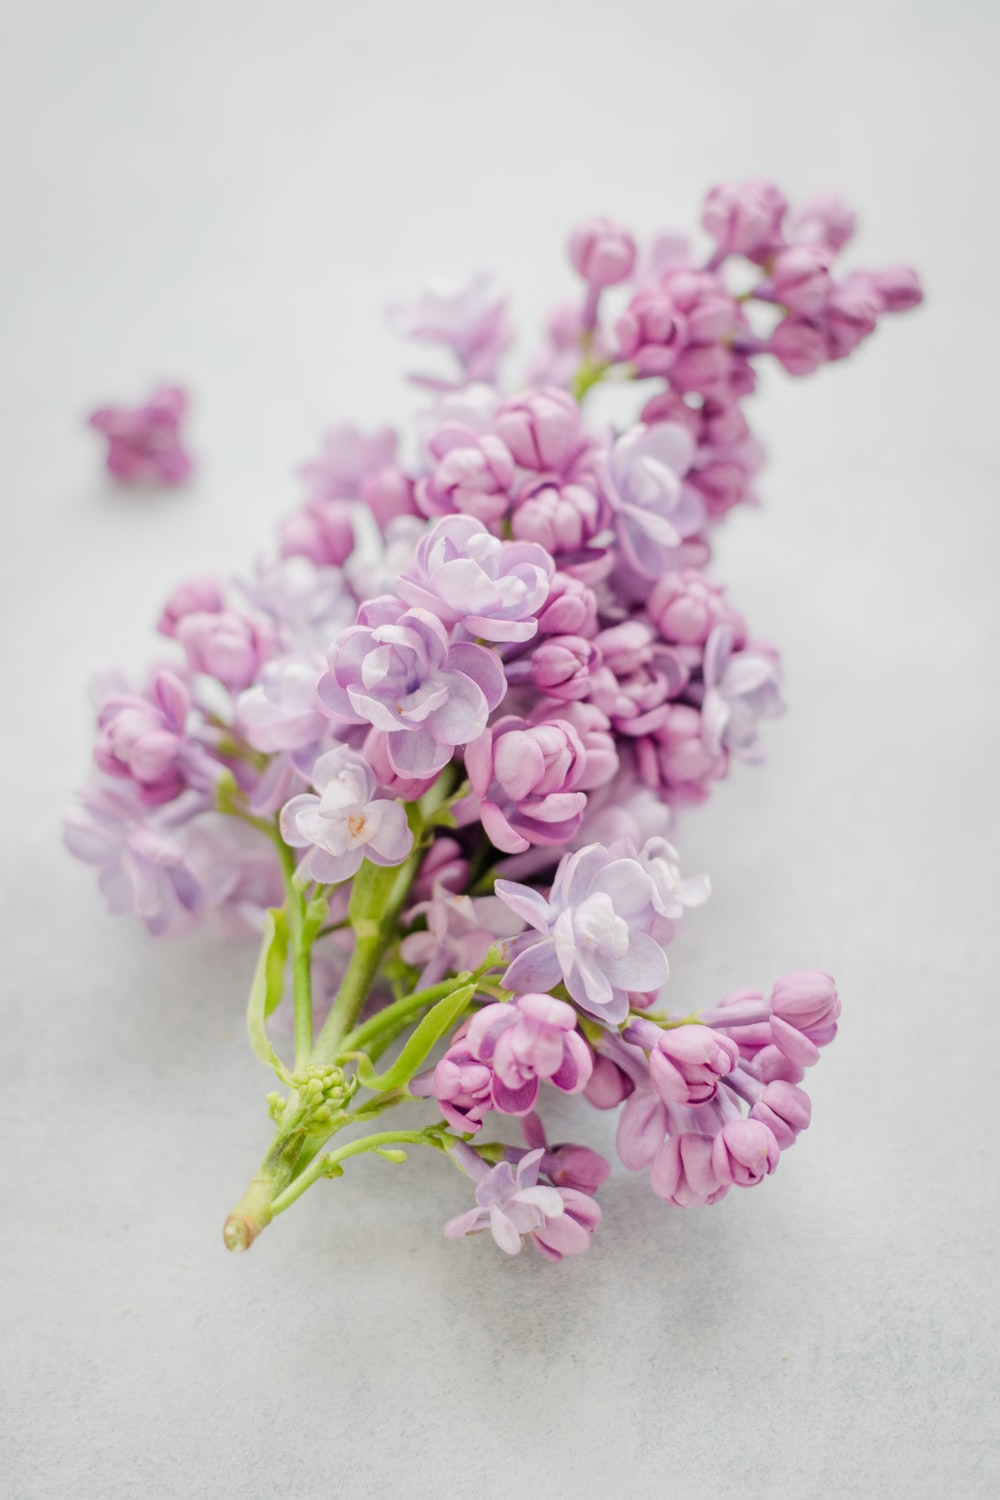 100 flower images hq download free flower pictures on unsplash pink cluster petaled flower on gray surface mightylinksfo